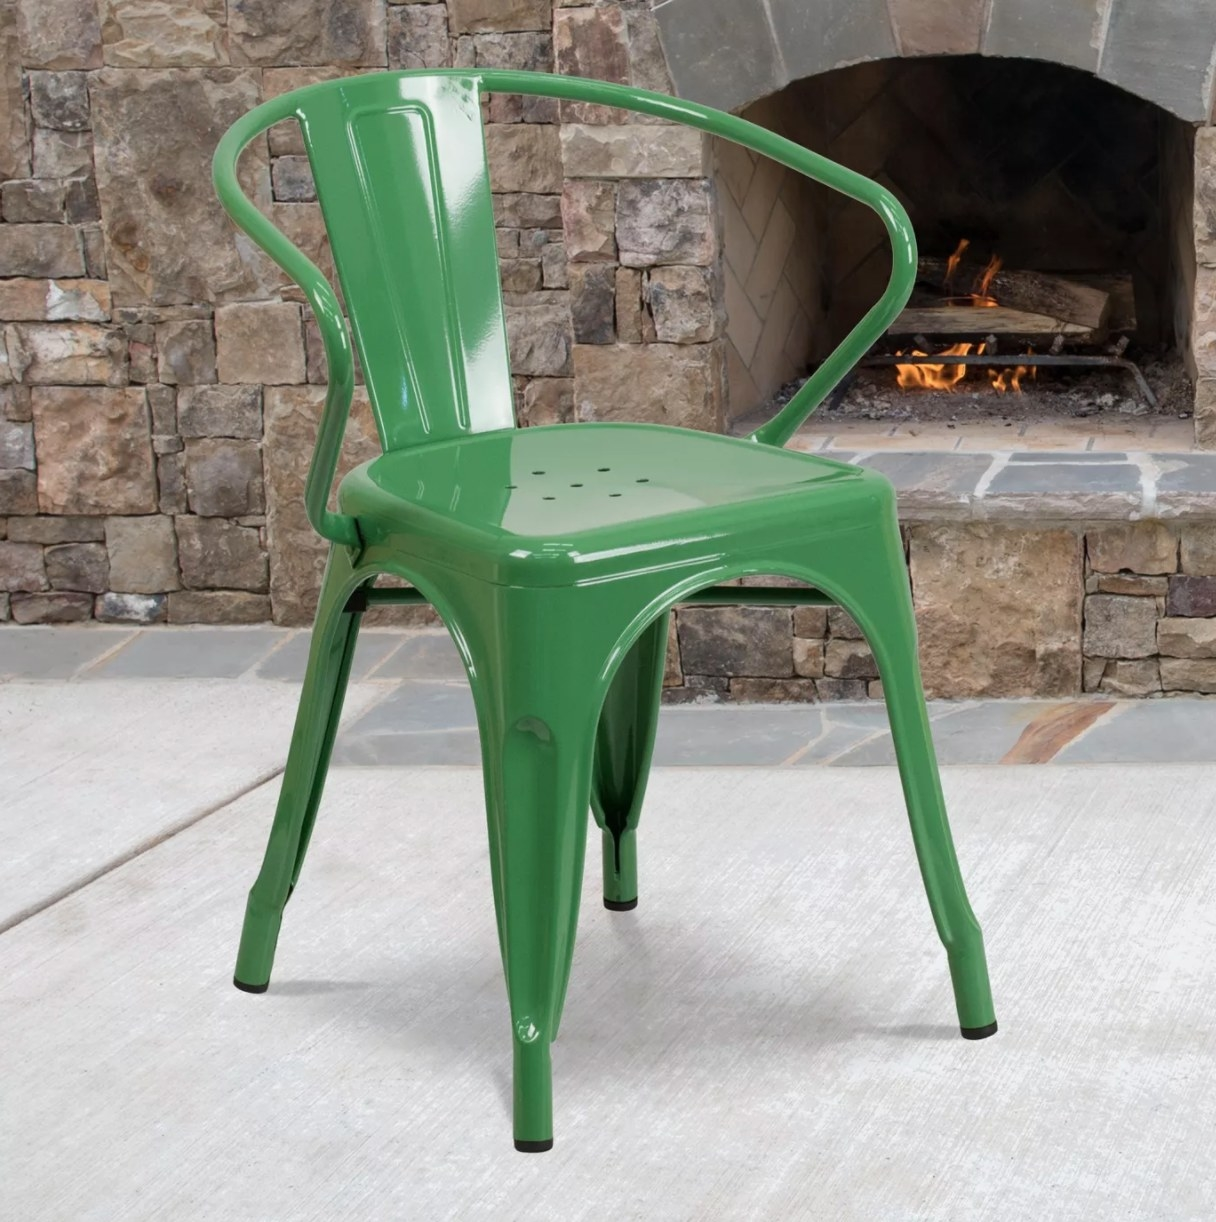 The indoor/outdoor chair